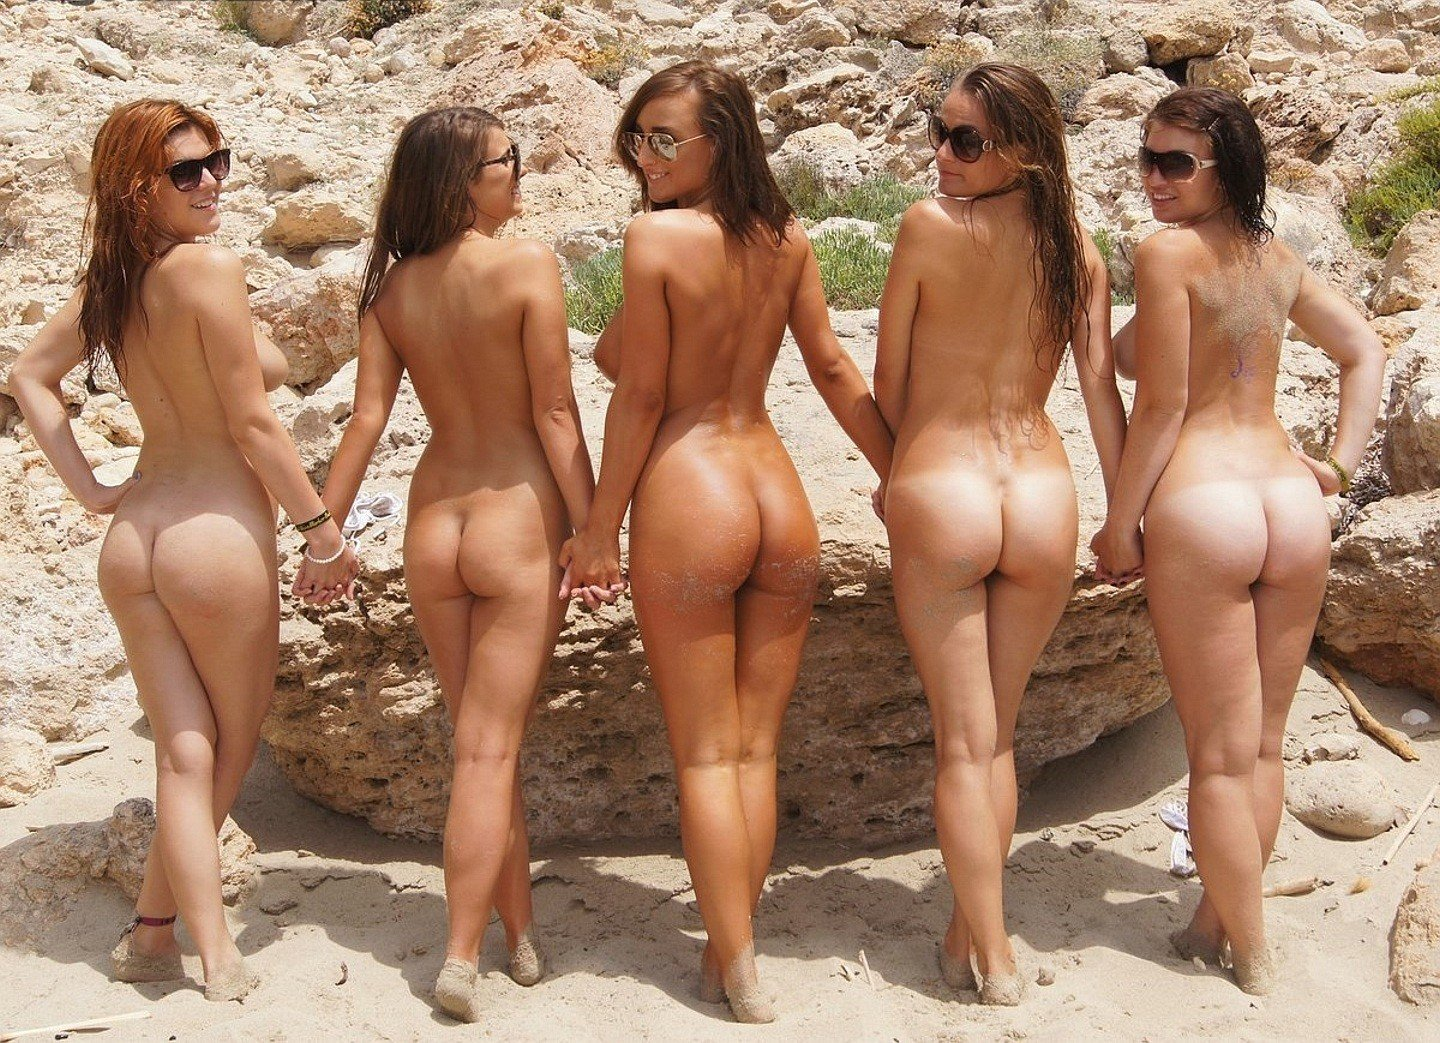 Nude beaches with fine ass women #13